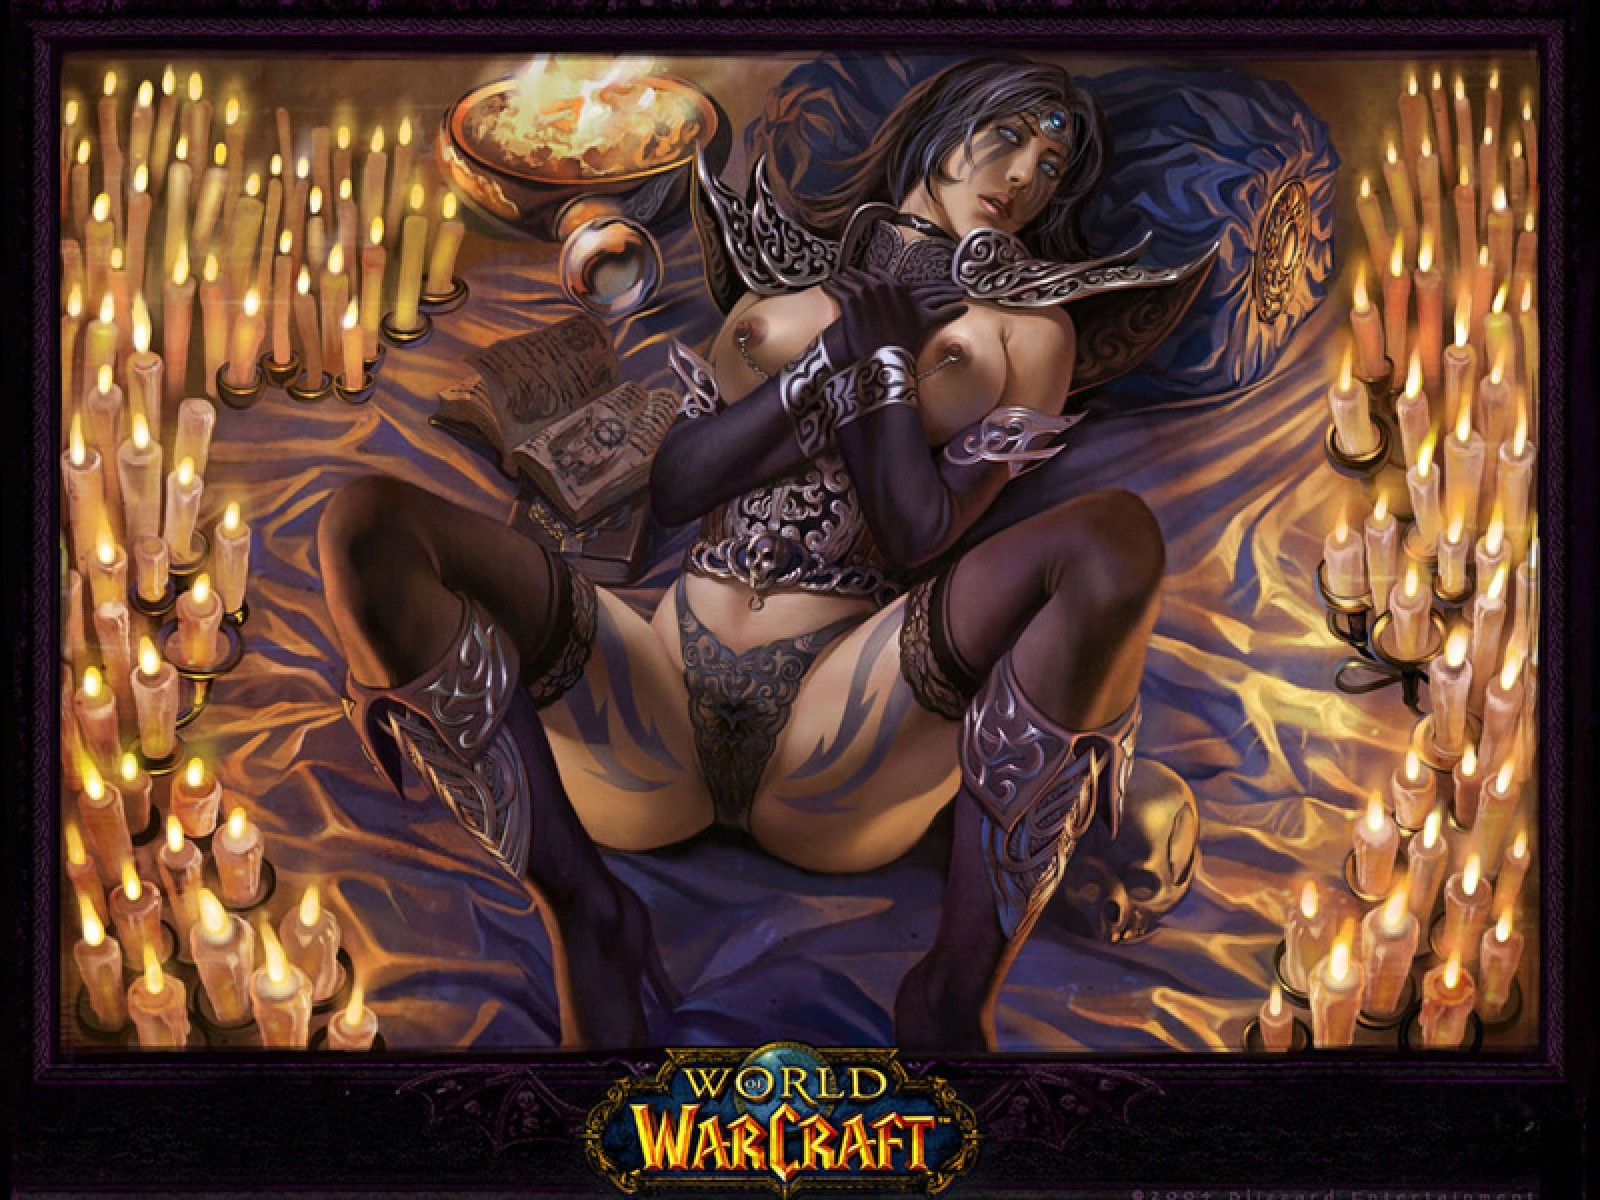 World of warcraft cartoon porn pictures drenai adult sensual wife